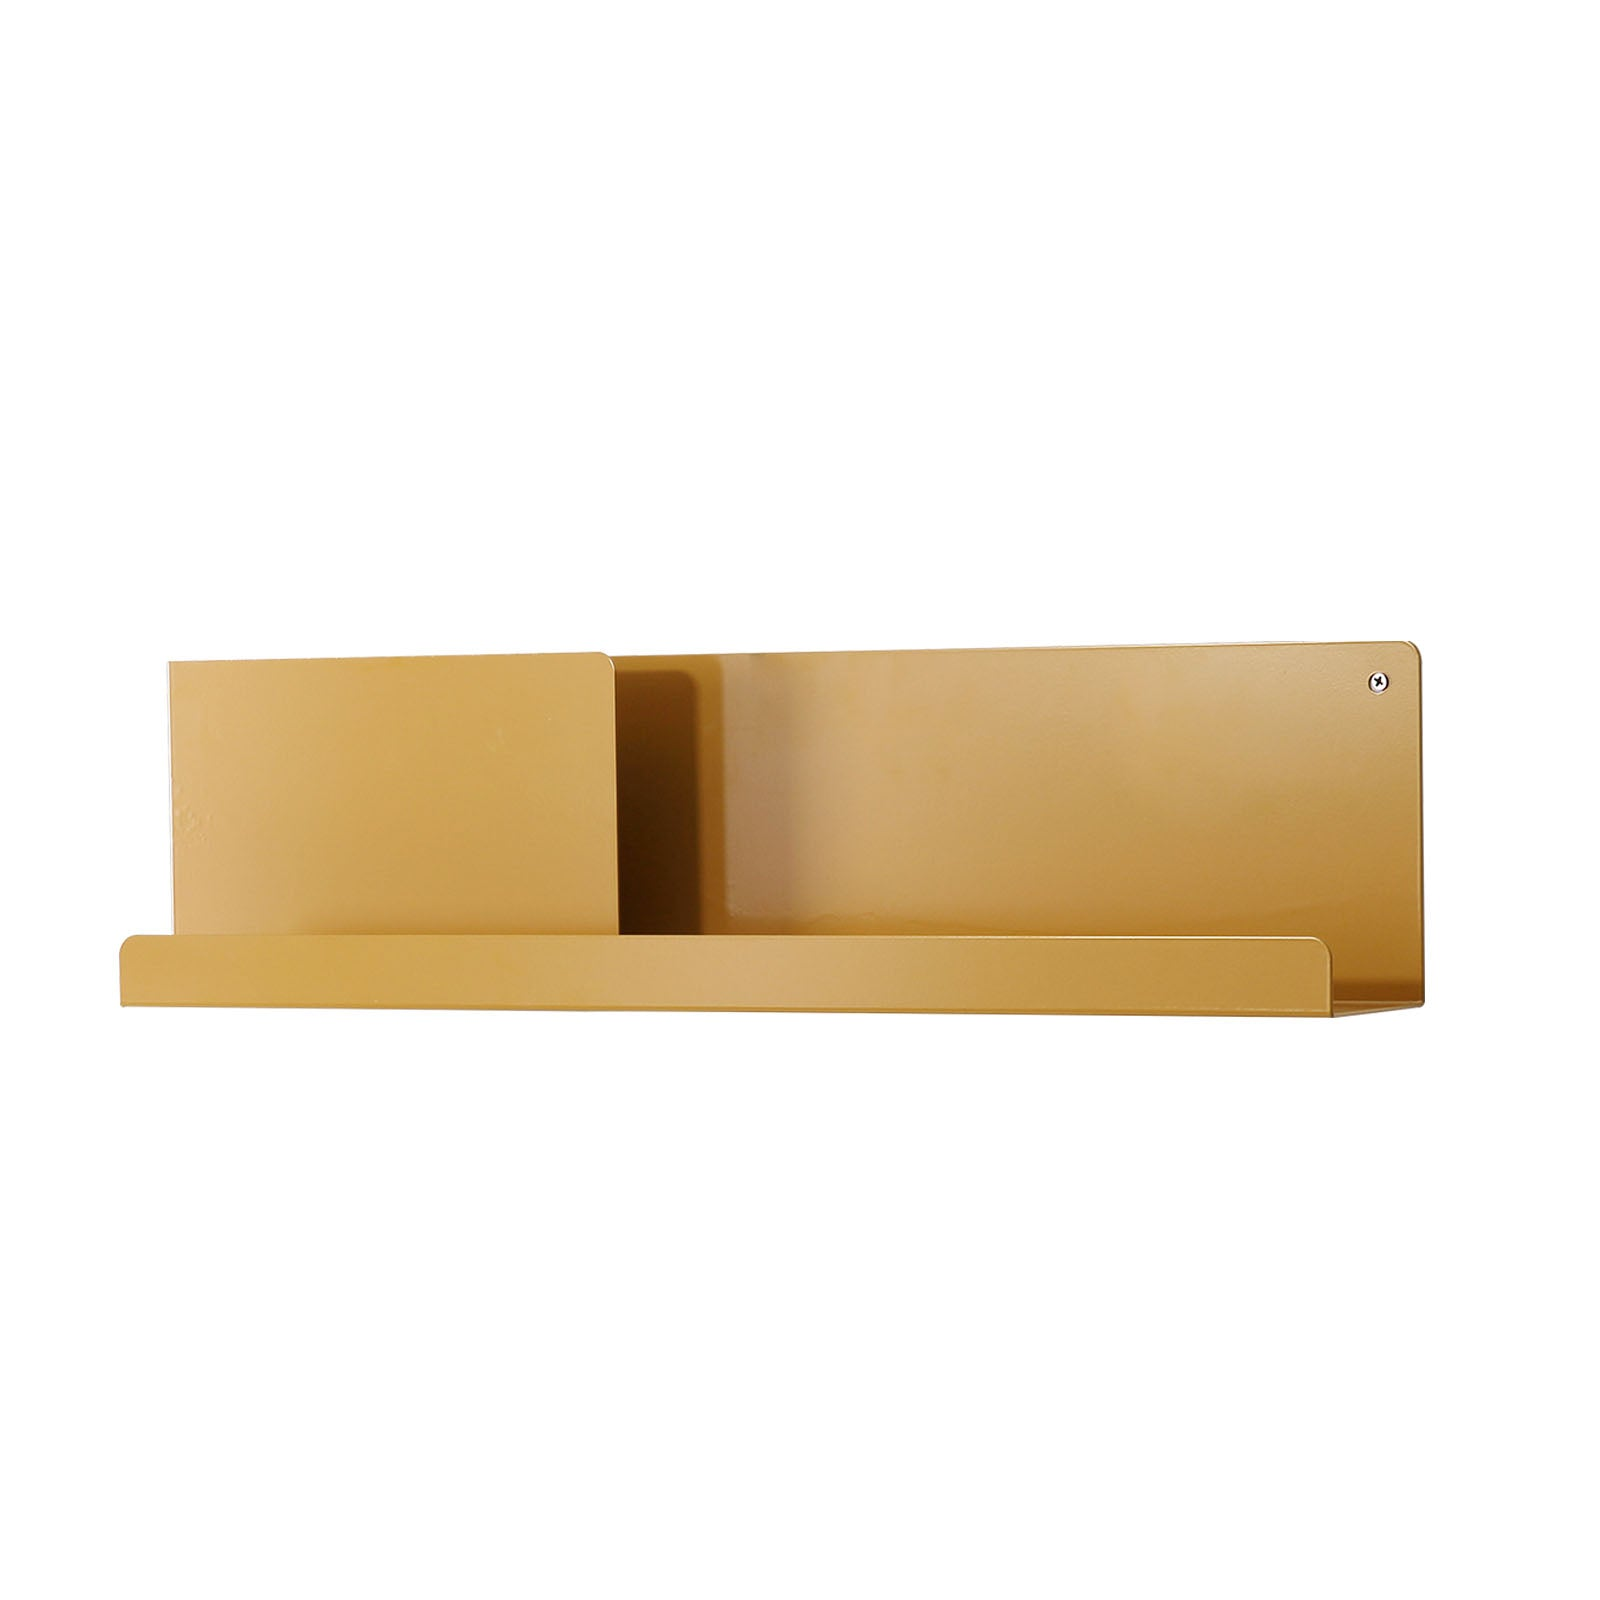 Mid Century Classic wall shelf CH-038-Ginger -  رف من ميد سينشري كلاسيك - Shop Online Furniture and Home Decor Store in Dubai, UAE at ebarza